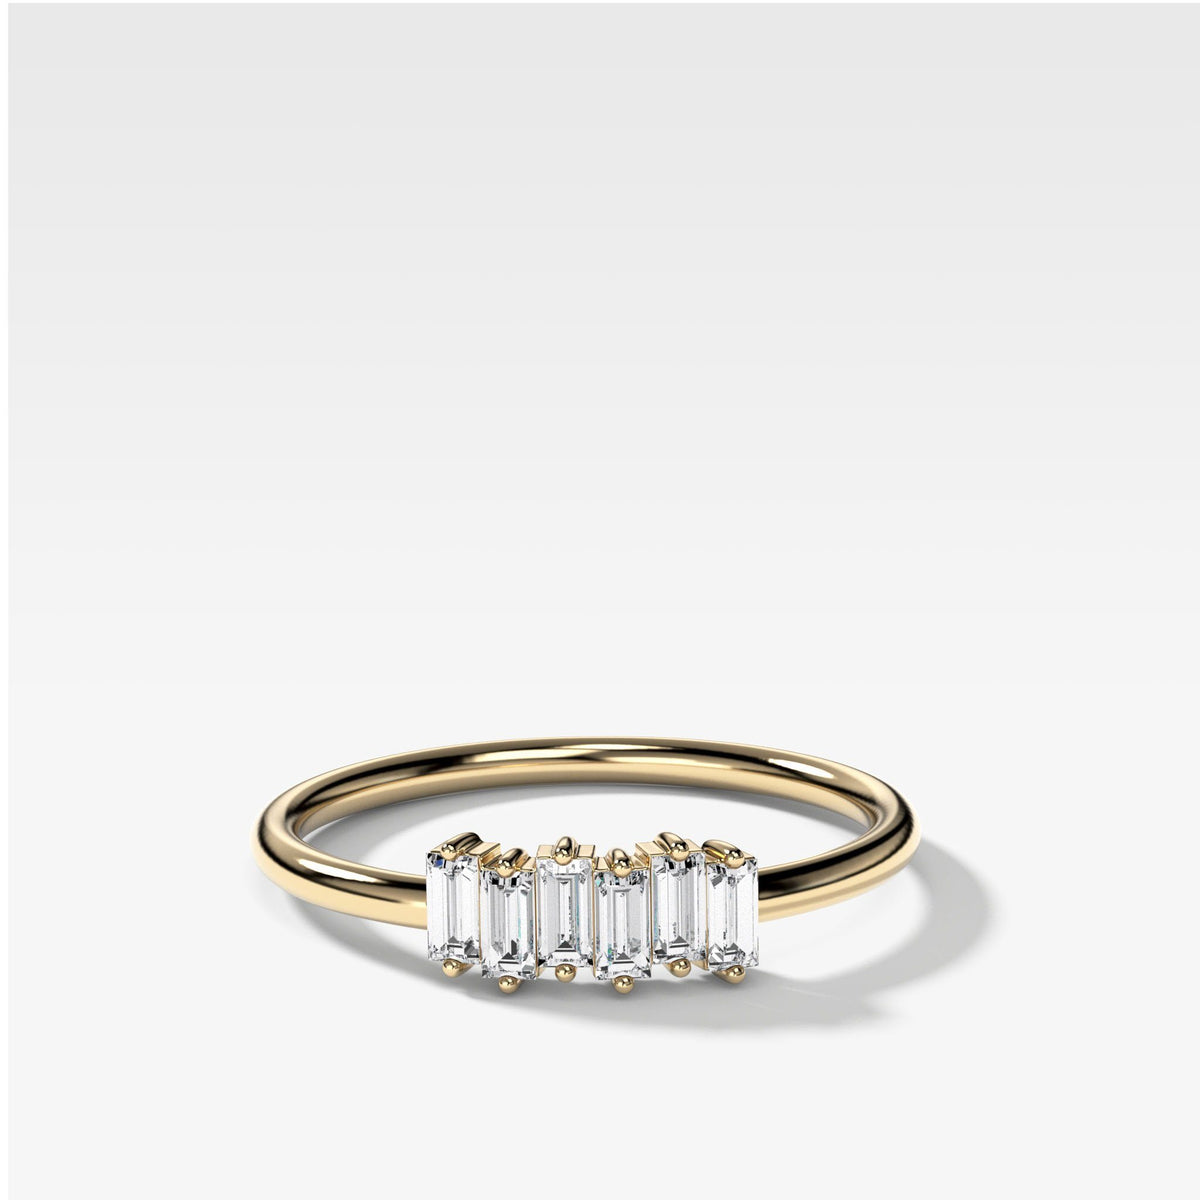 Petite Baguette Stacker Band available in Yellow Gold by Good Stone